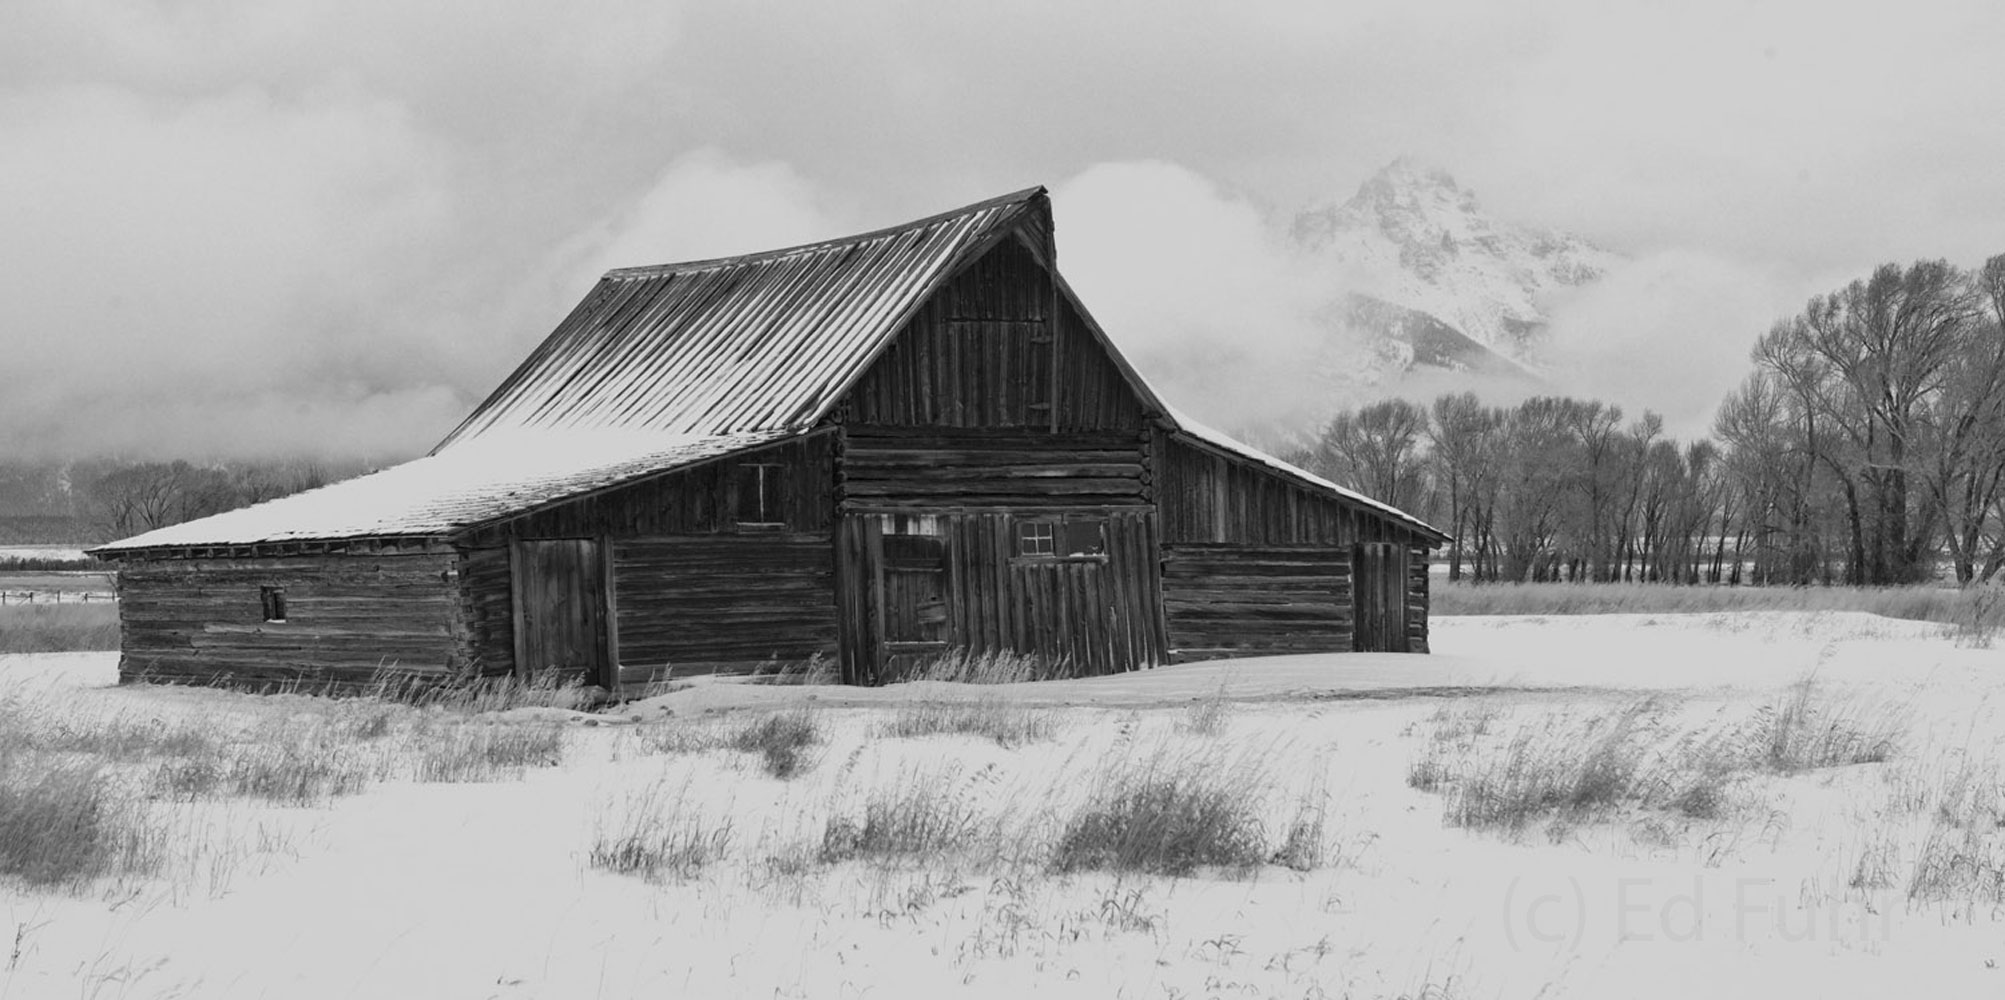 moulton barn, tetons, snow, winter, photo